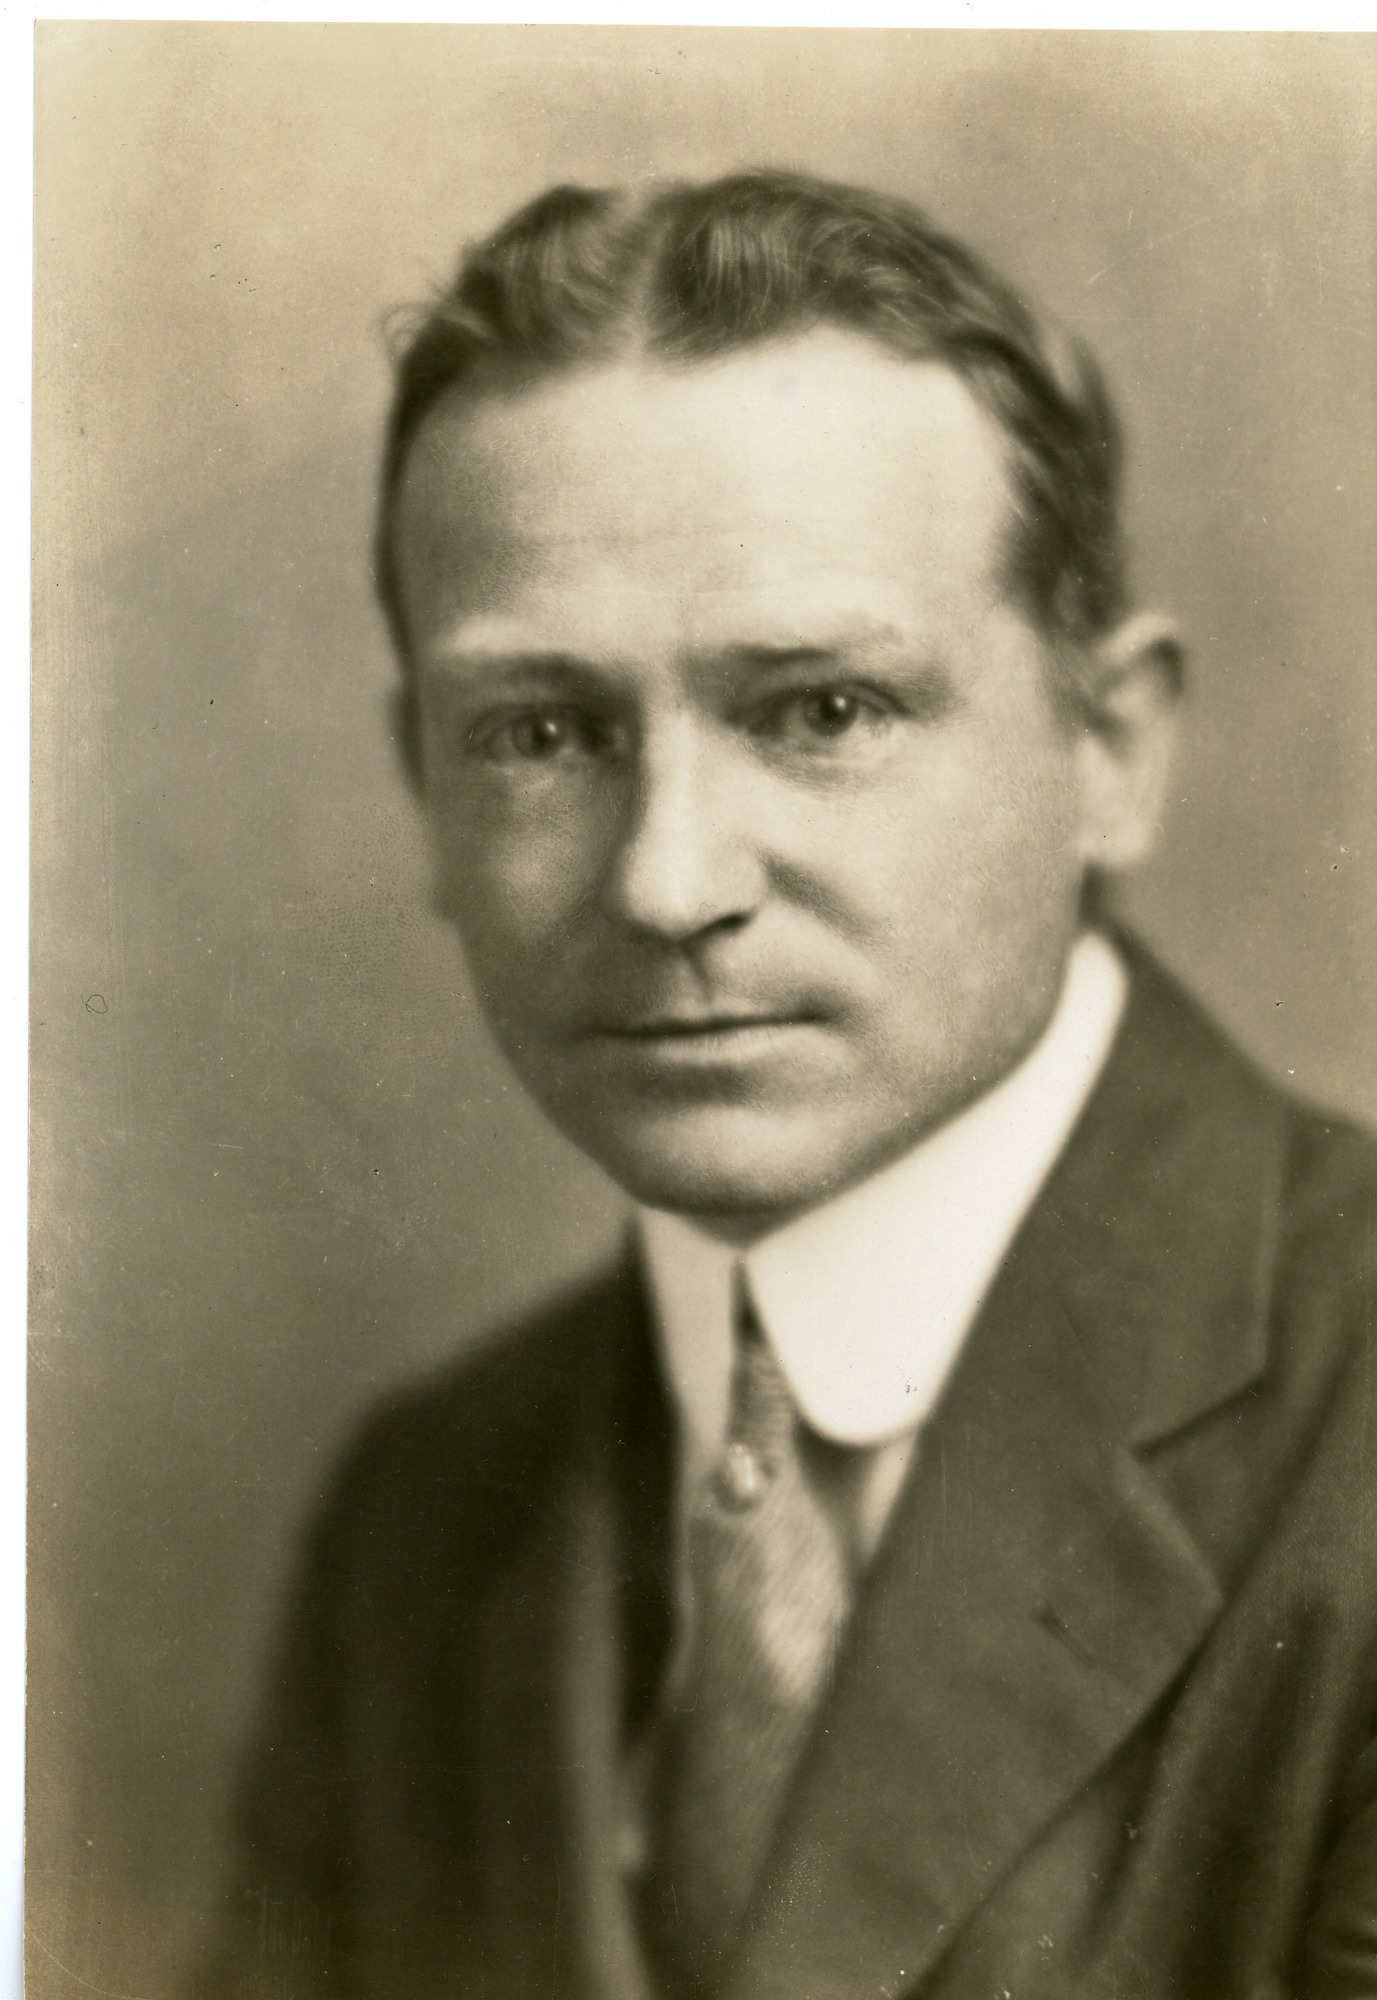 Young Austin H. Clark, 1910, by Unknown, c. 1910, Smithsonian Archives - History Div, SIA2007-0009.